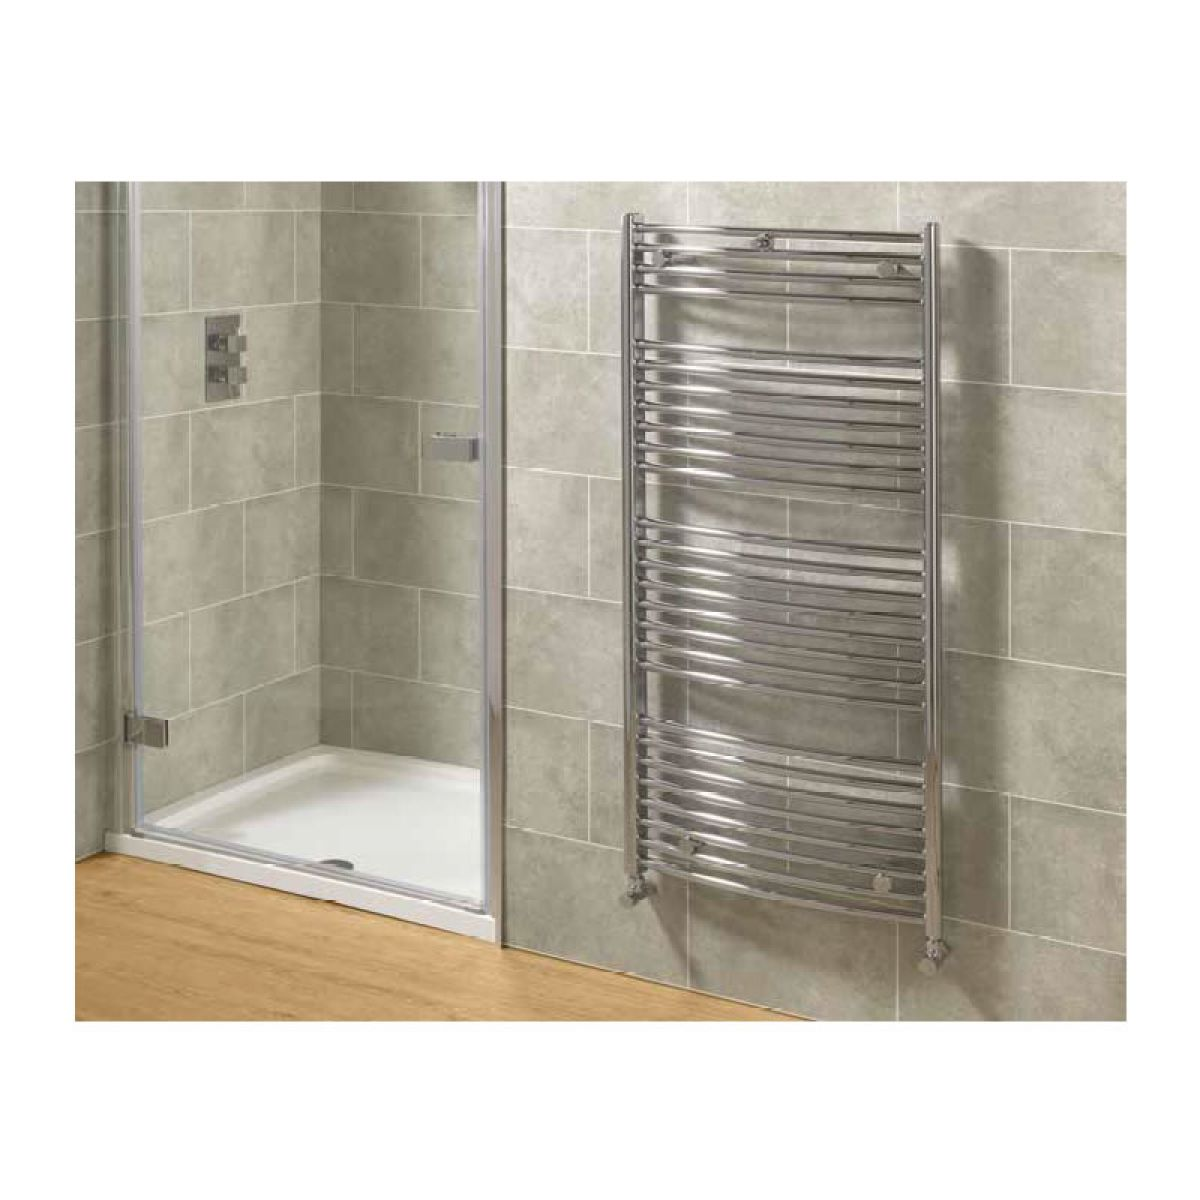 Mere Blenheim Curved Chrome Multirail Radiator